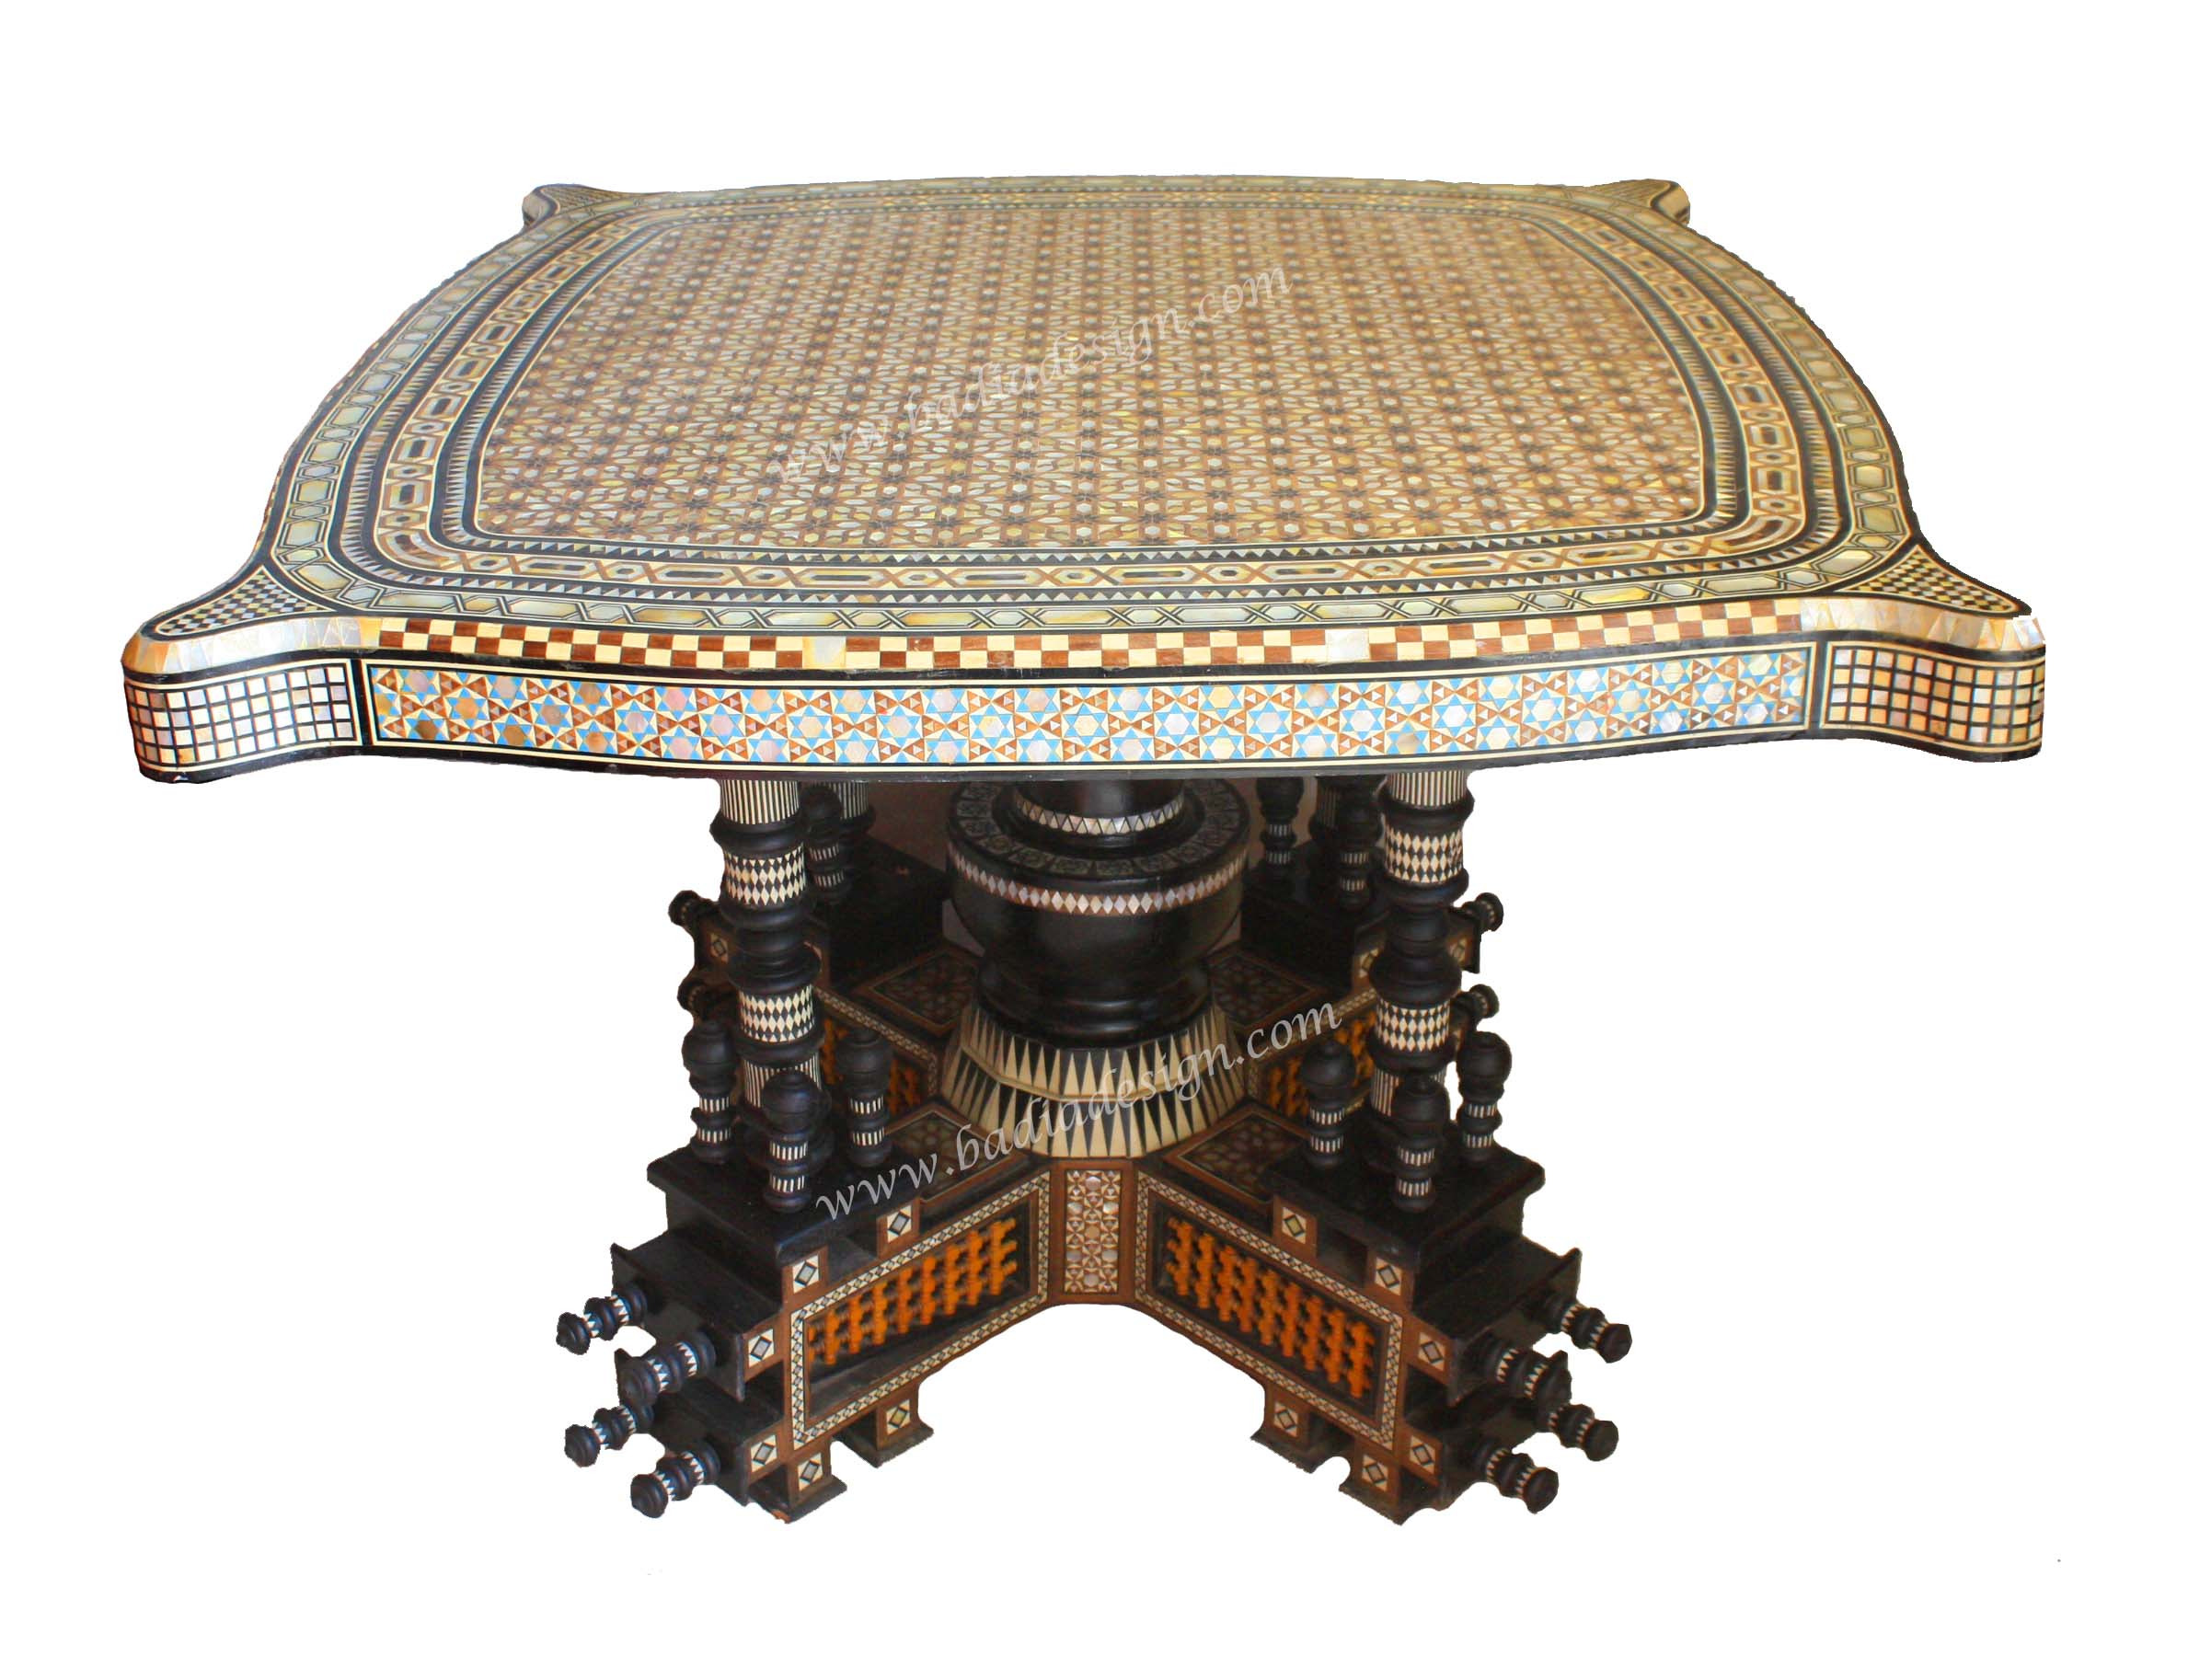 Syrian Design Inlaid Table